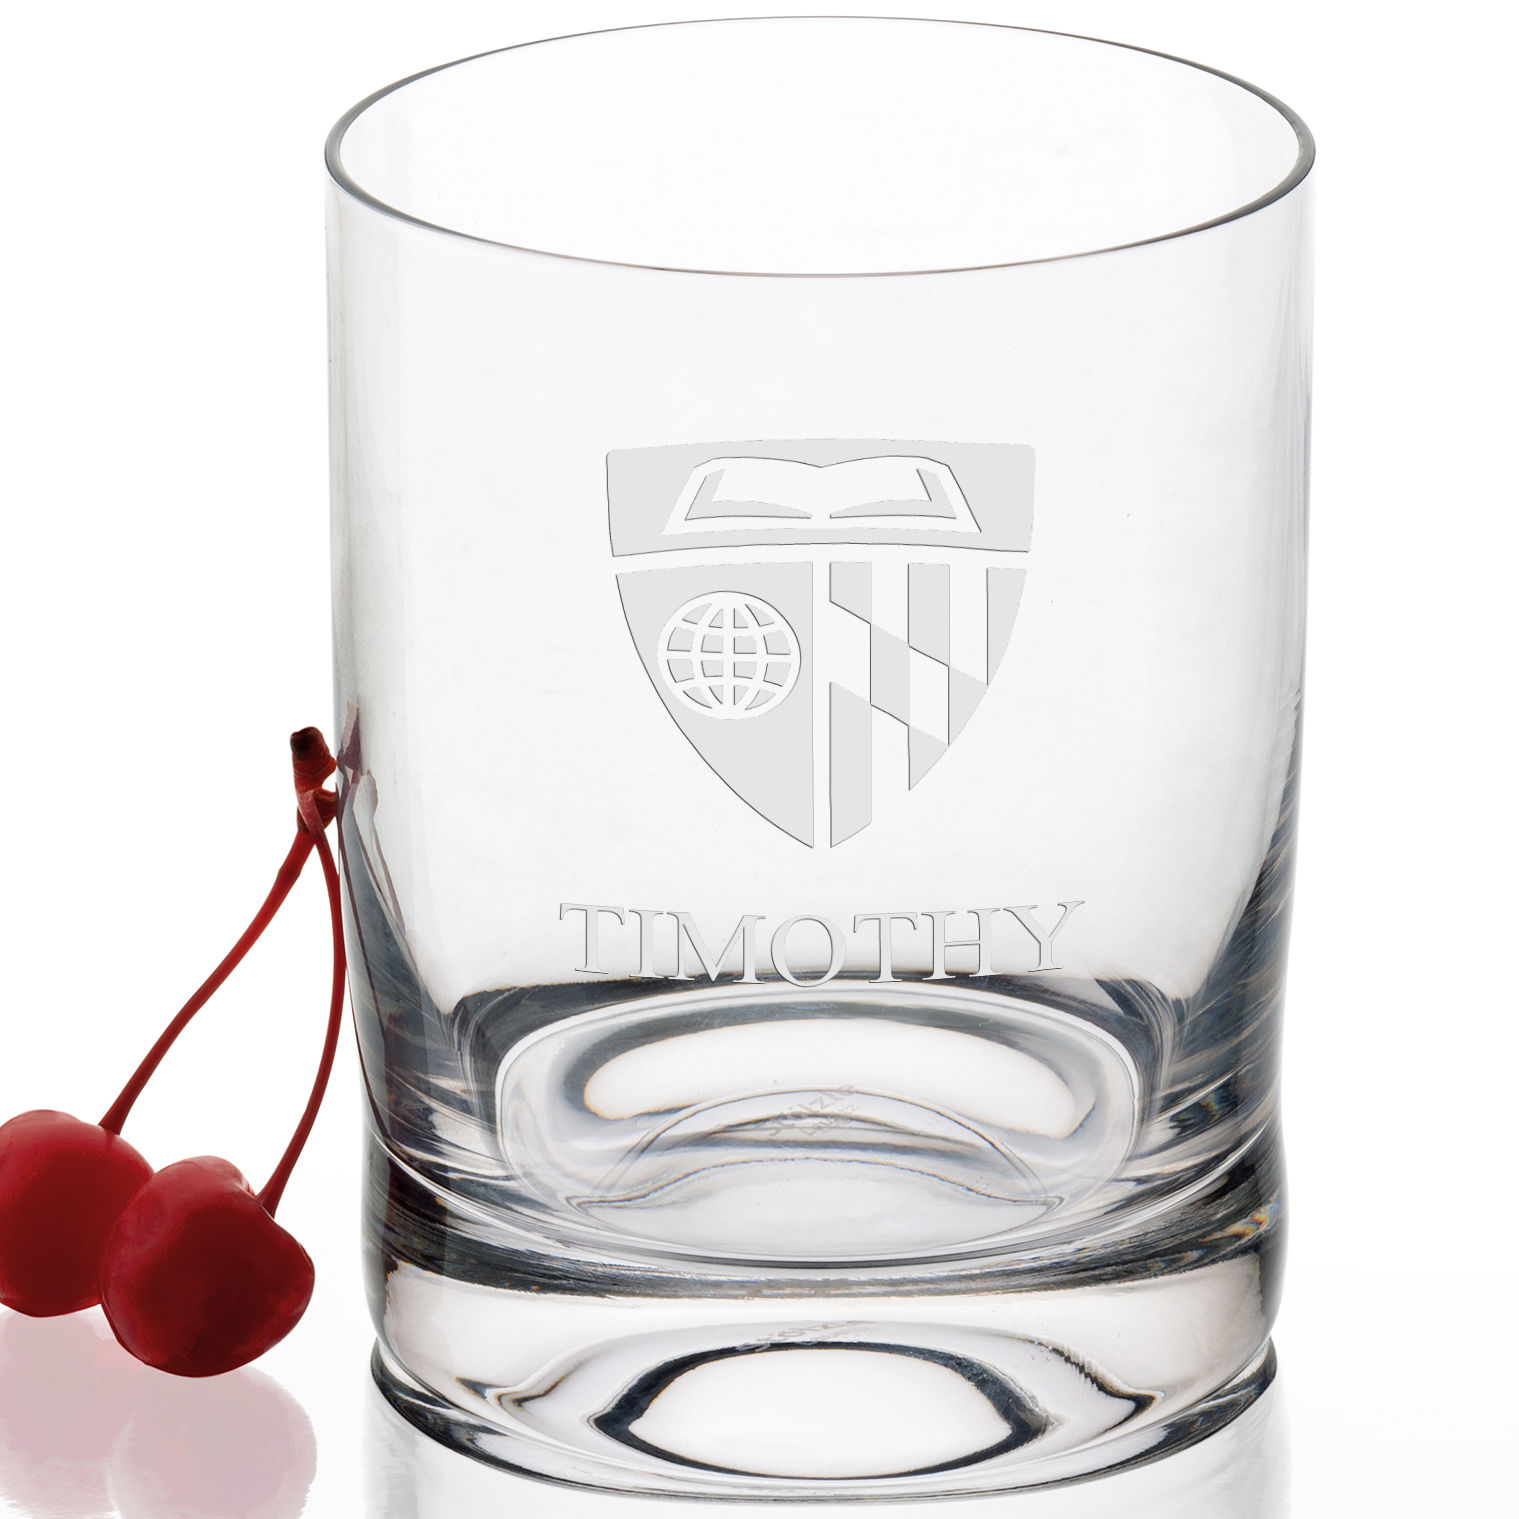 Johns Hopkins University Tumbler Glasses - Set of 4 - Image 2